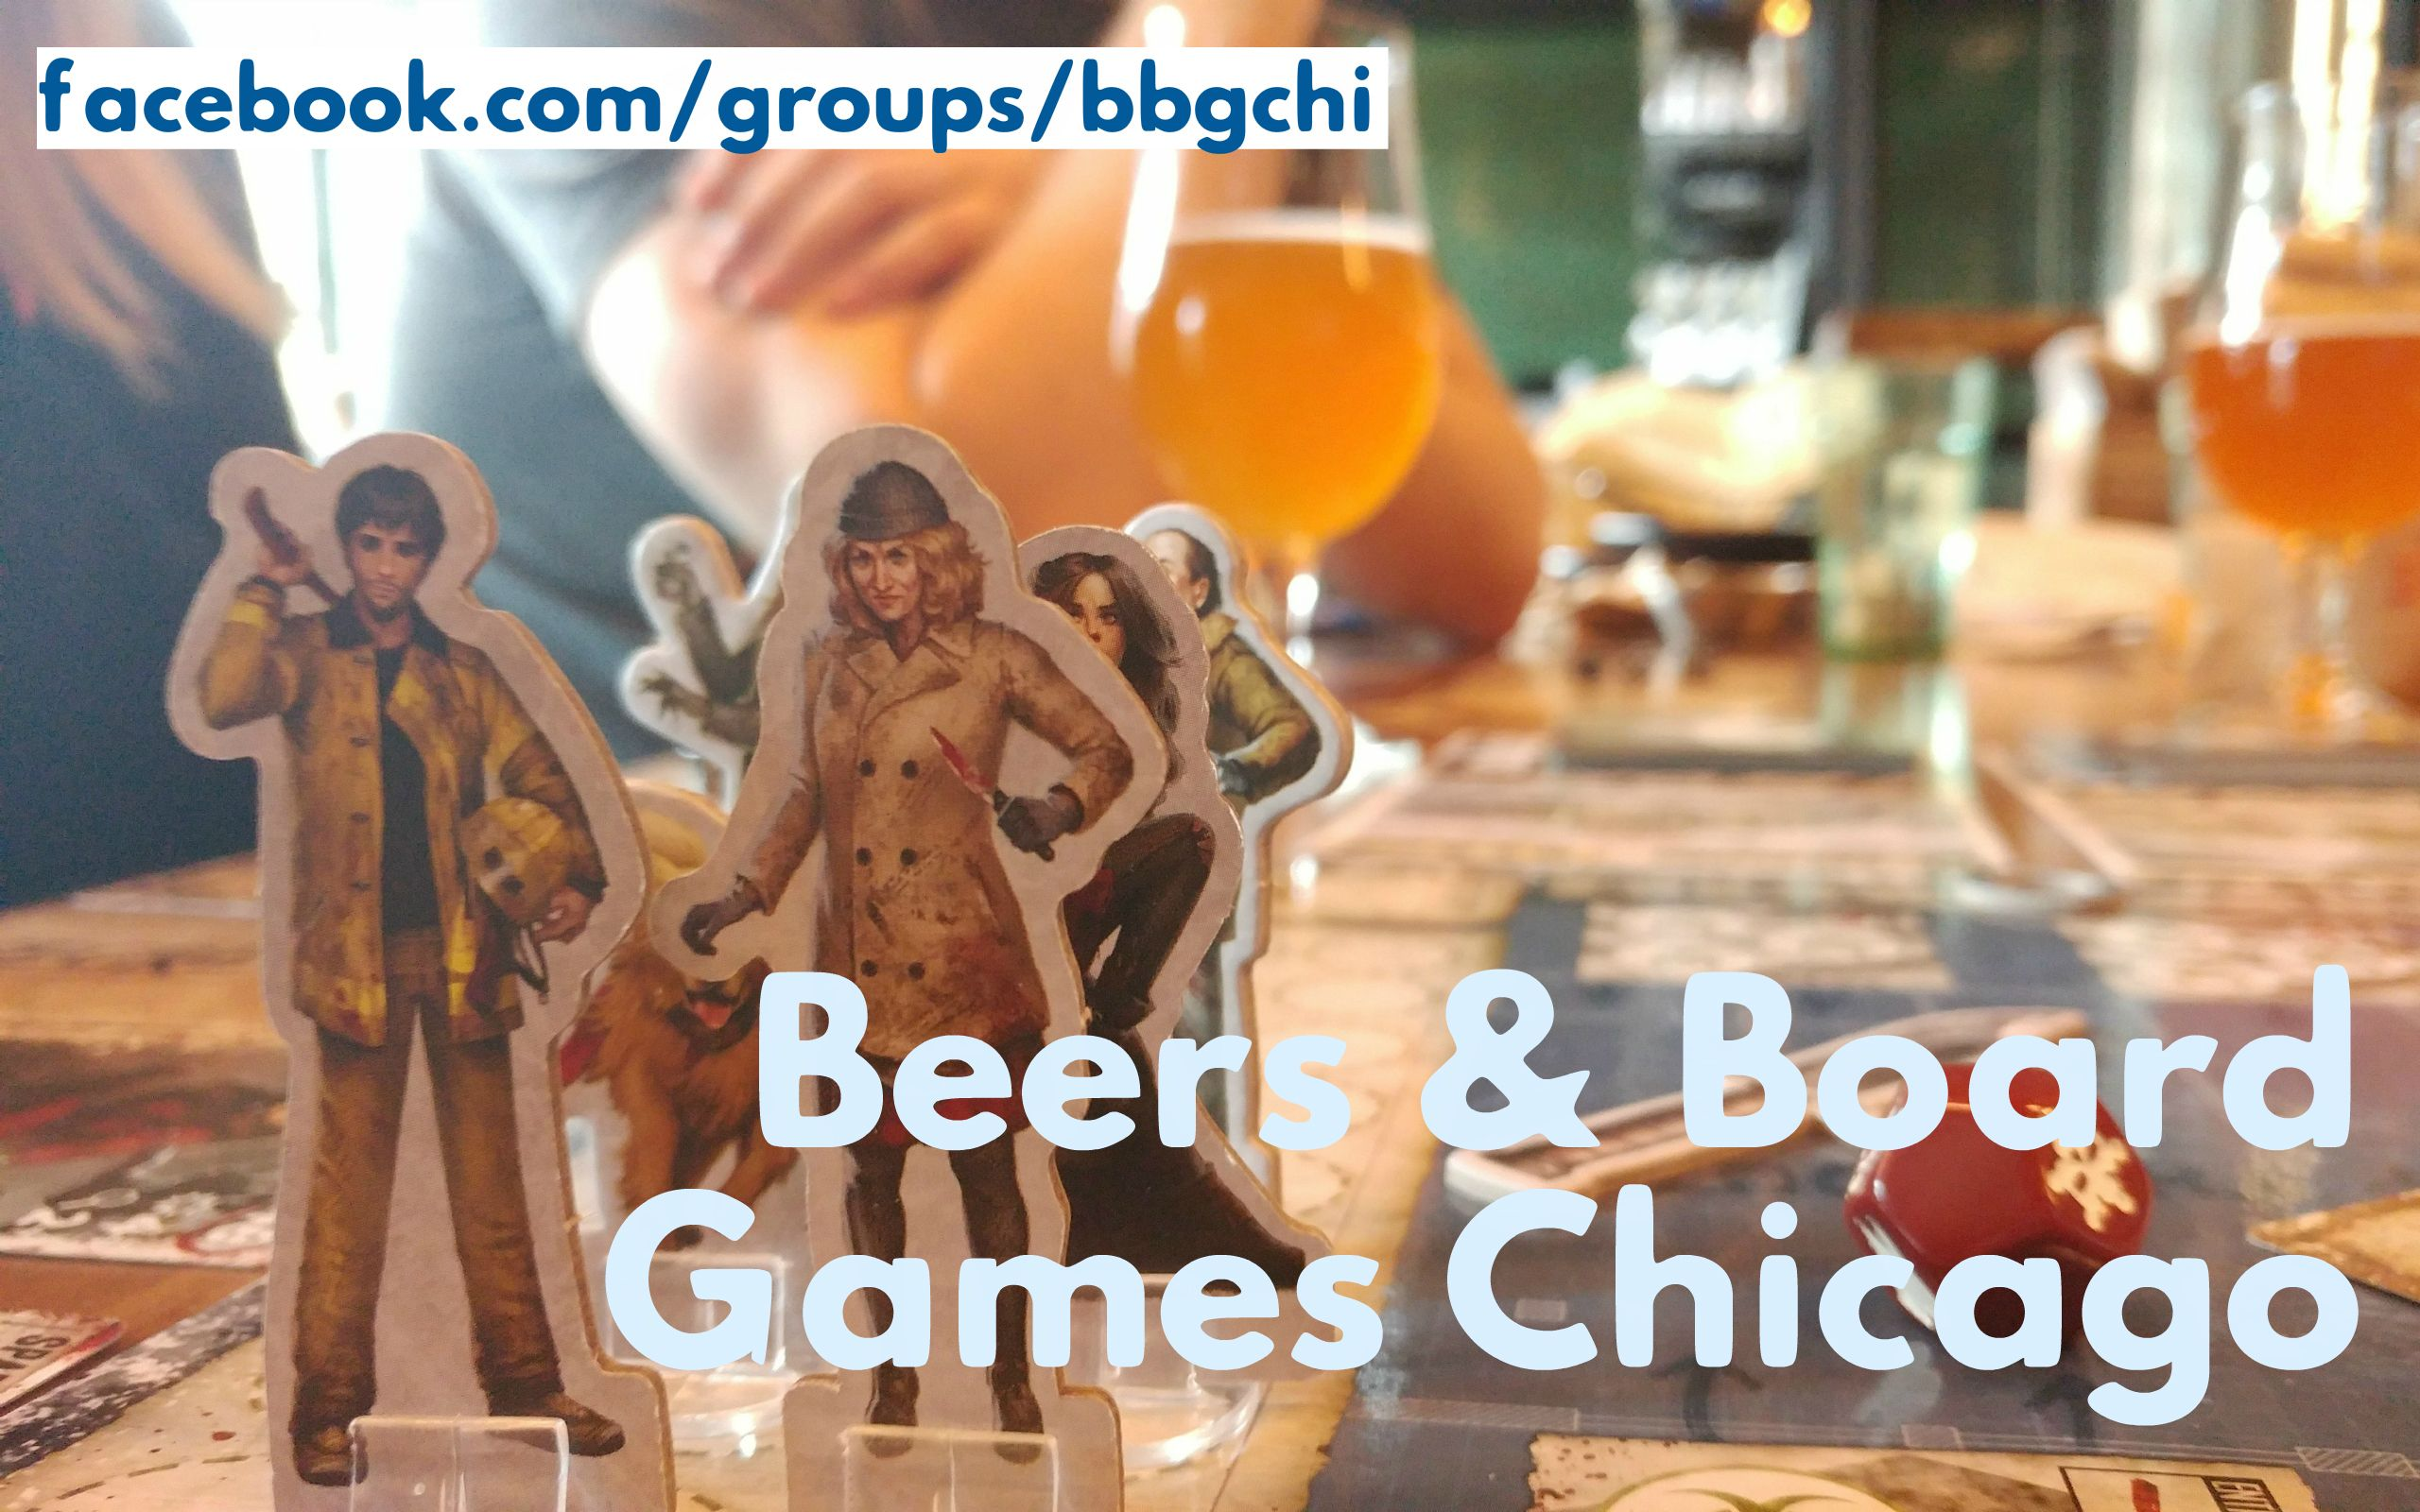 Beers & Board Games Chicago